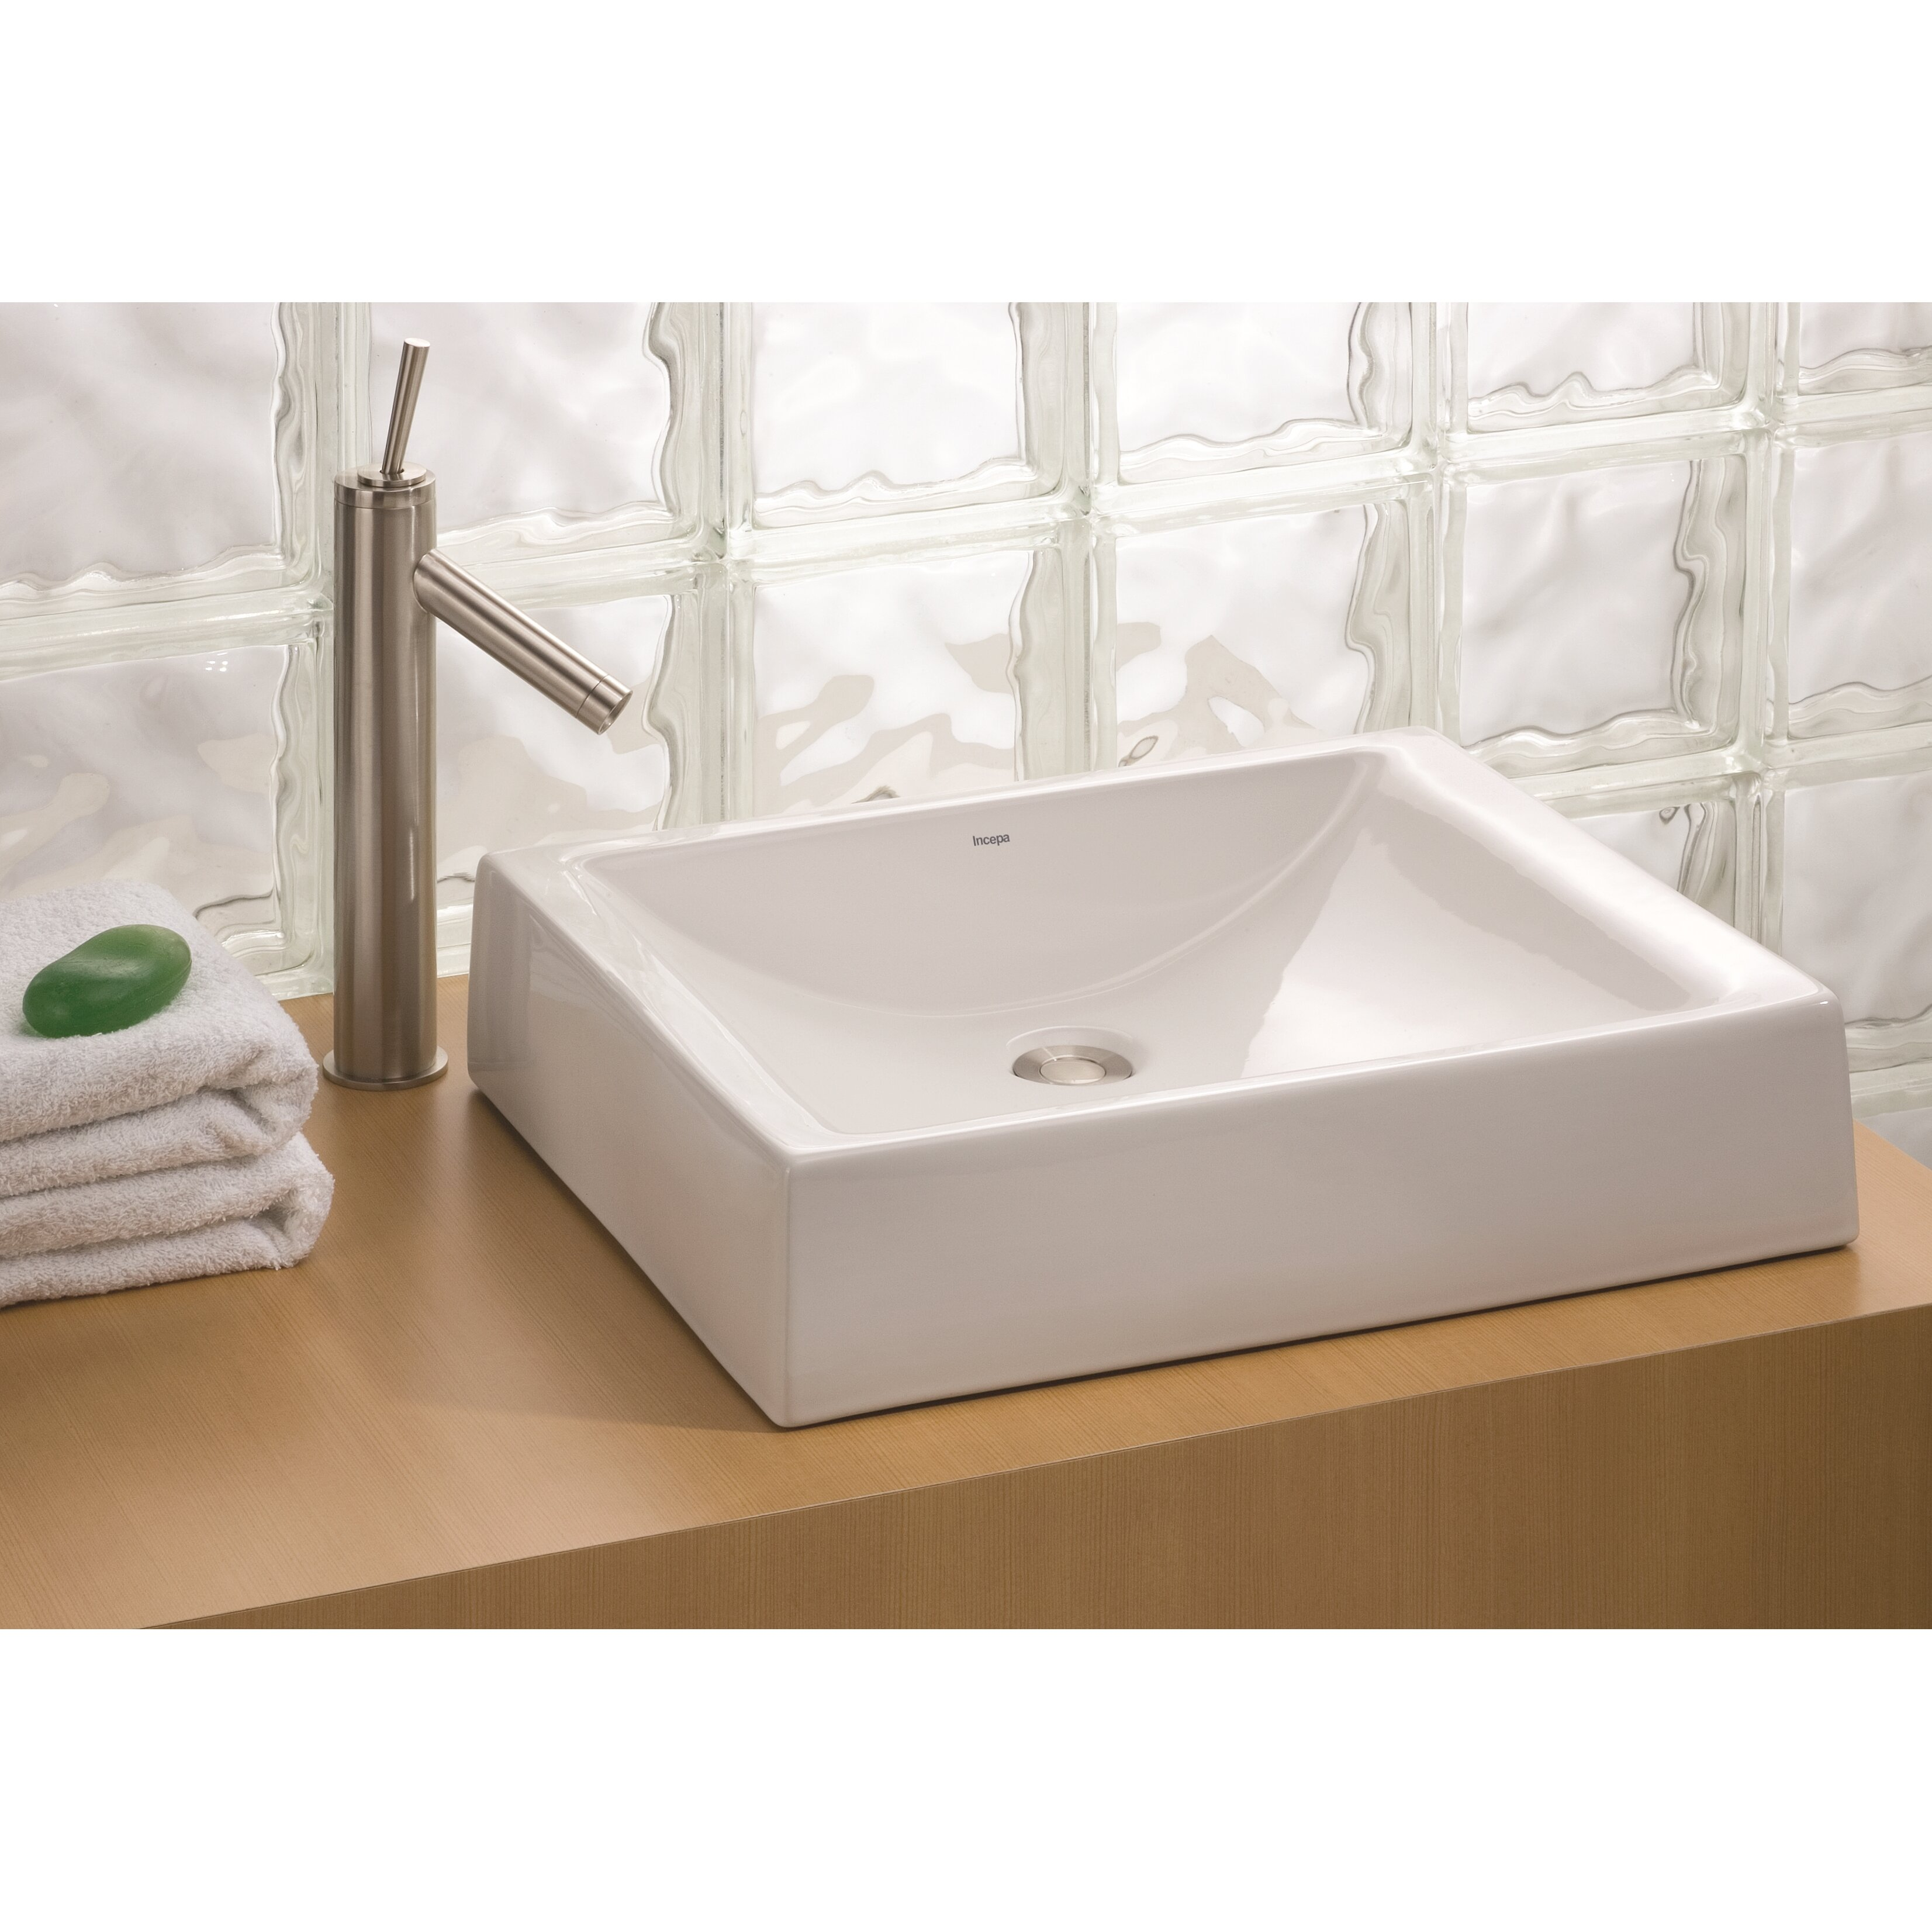 Cheviotproducts Pacific Vessel Sink